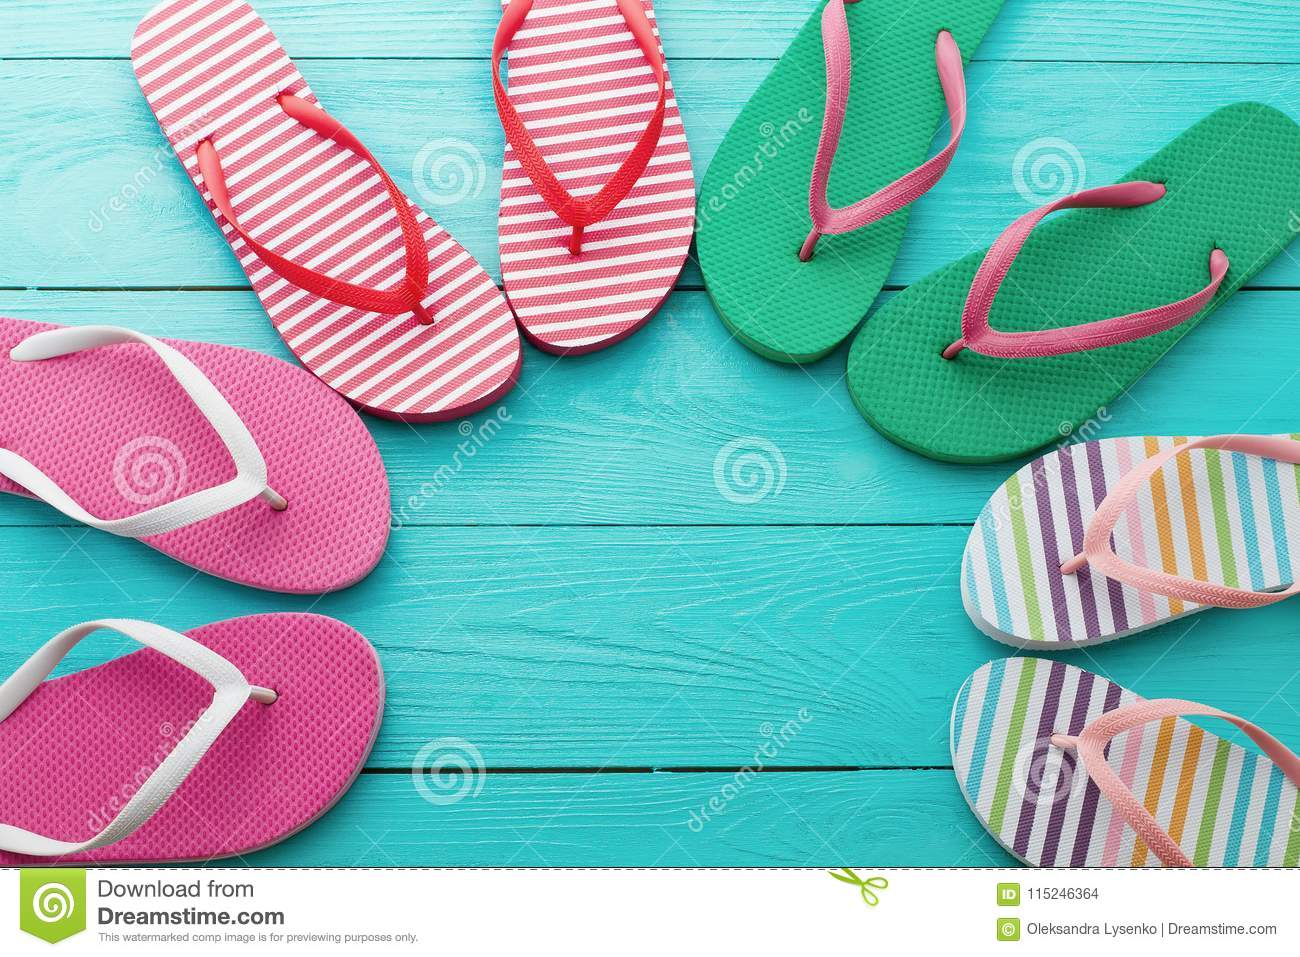 e1421456f Royalty-Free Stock Photo. Flip flops on blue wooden floor background. Top  view and copy space. Summer fun